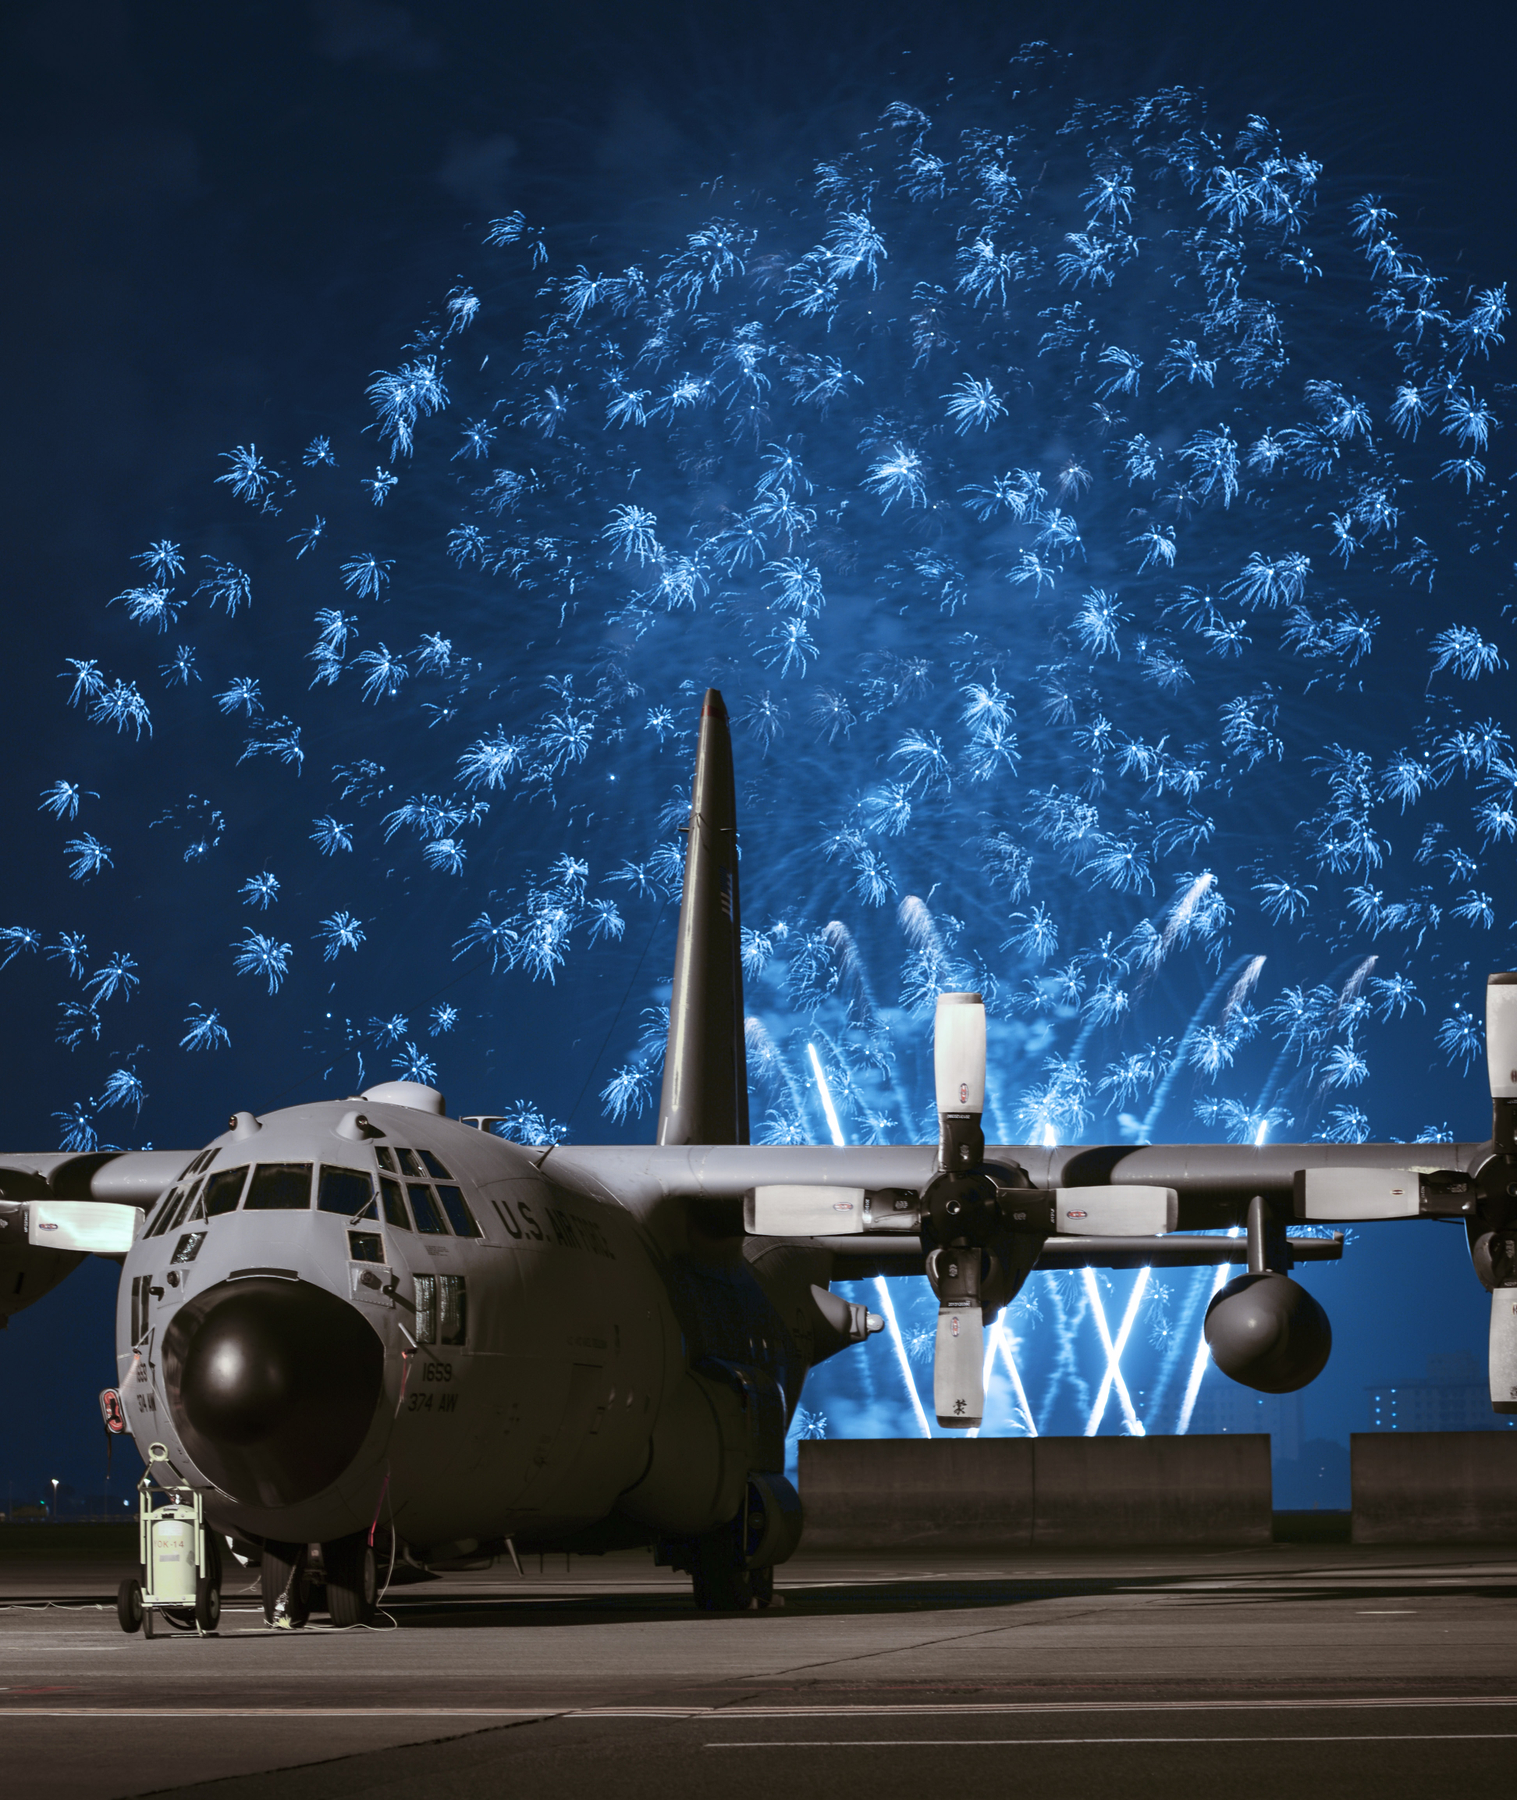 Fireworks explode behind a C-130 Hercules during Celebrate America, July 2, 2015, at Yokota Air Base, Japan. Celebrate America is an annual event that provides military members and their families the opportunity to enjoy games, food and bands before culminating in a fireworks display over the Yokota airfield to celebrate Independence Day. (U.S. Air Force photo by Airman 1st Class Delano Scott/Released)